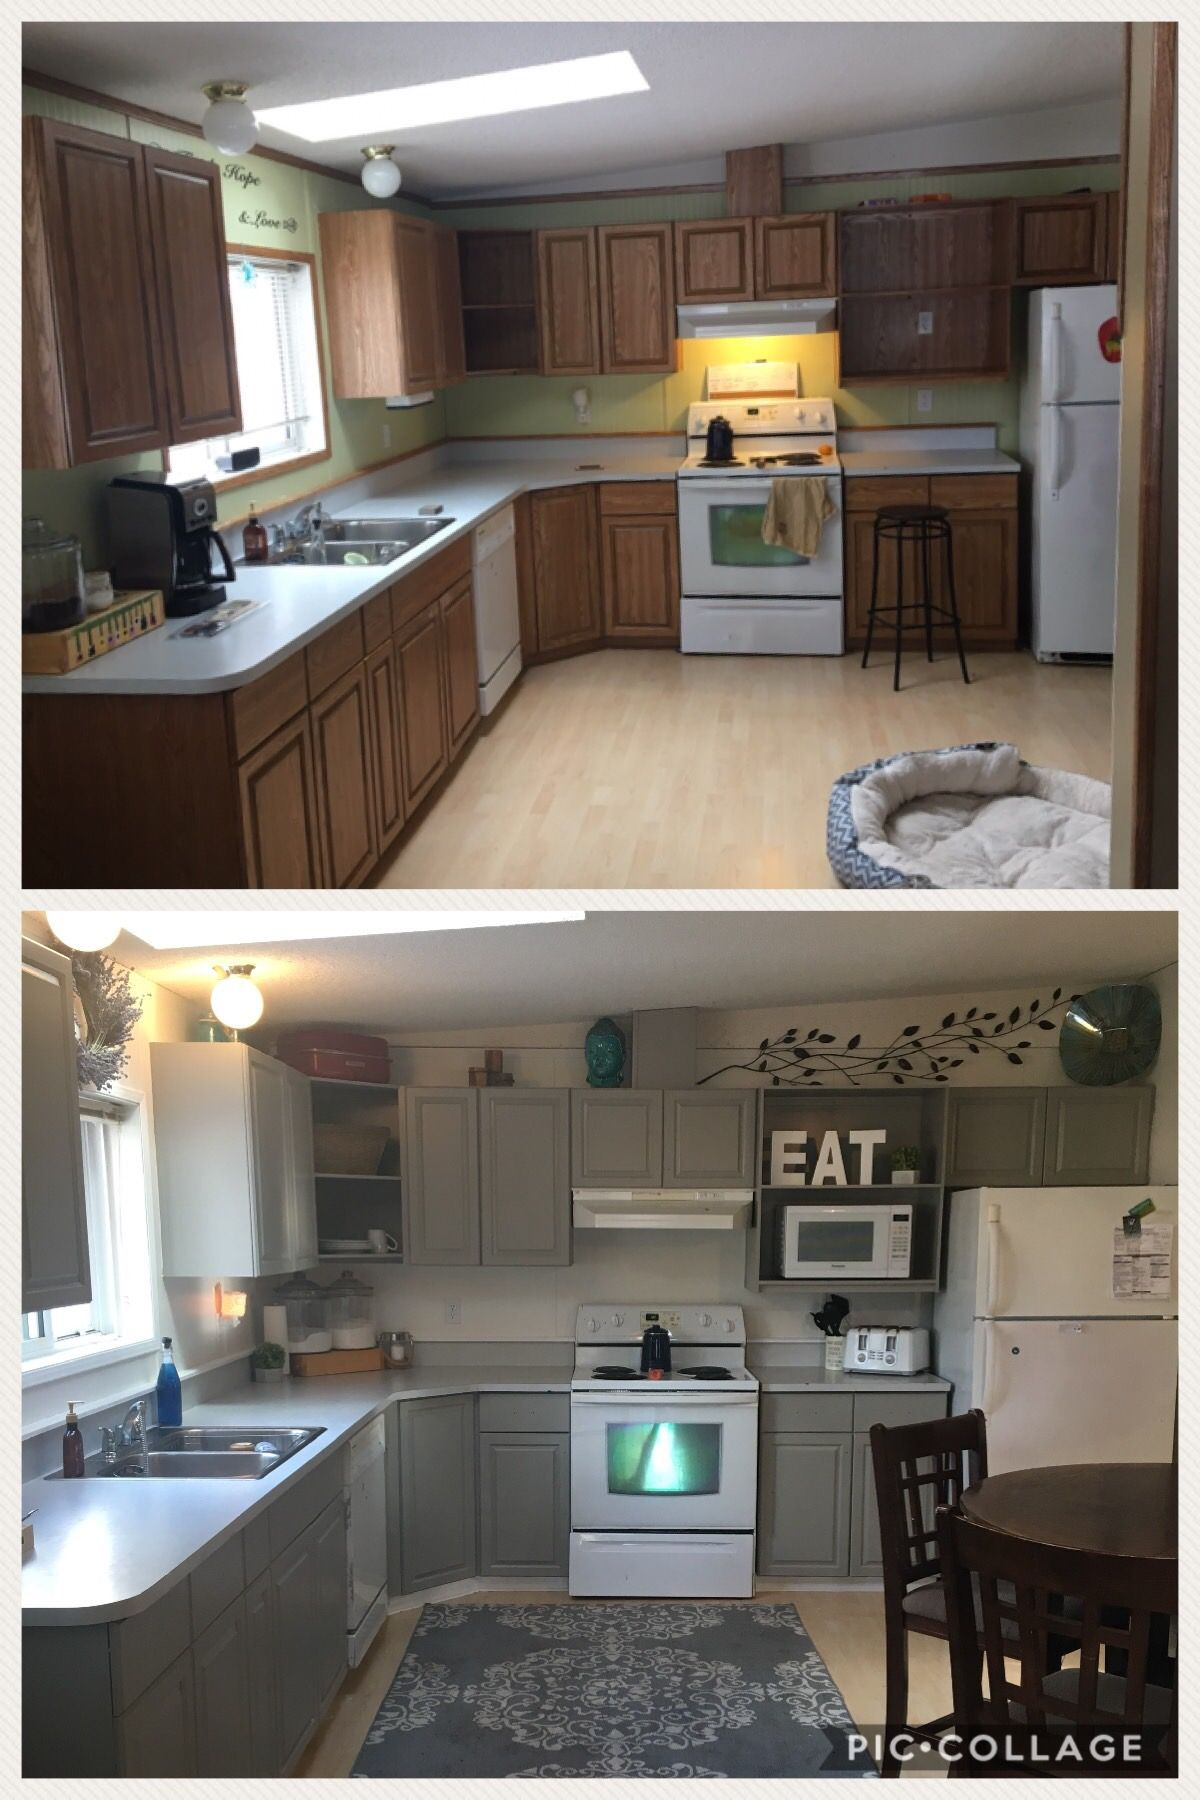 Before And After Painting My Oak Cabinets Prime 1 2 3 Bullseye Paint Is Design Series Dorean Grey Diy Kitchen Remodel Kitchen Renovation Kitchen Diy Makeover